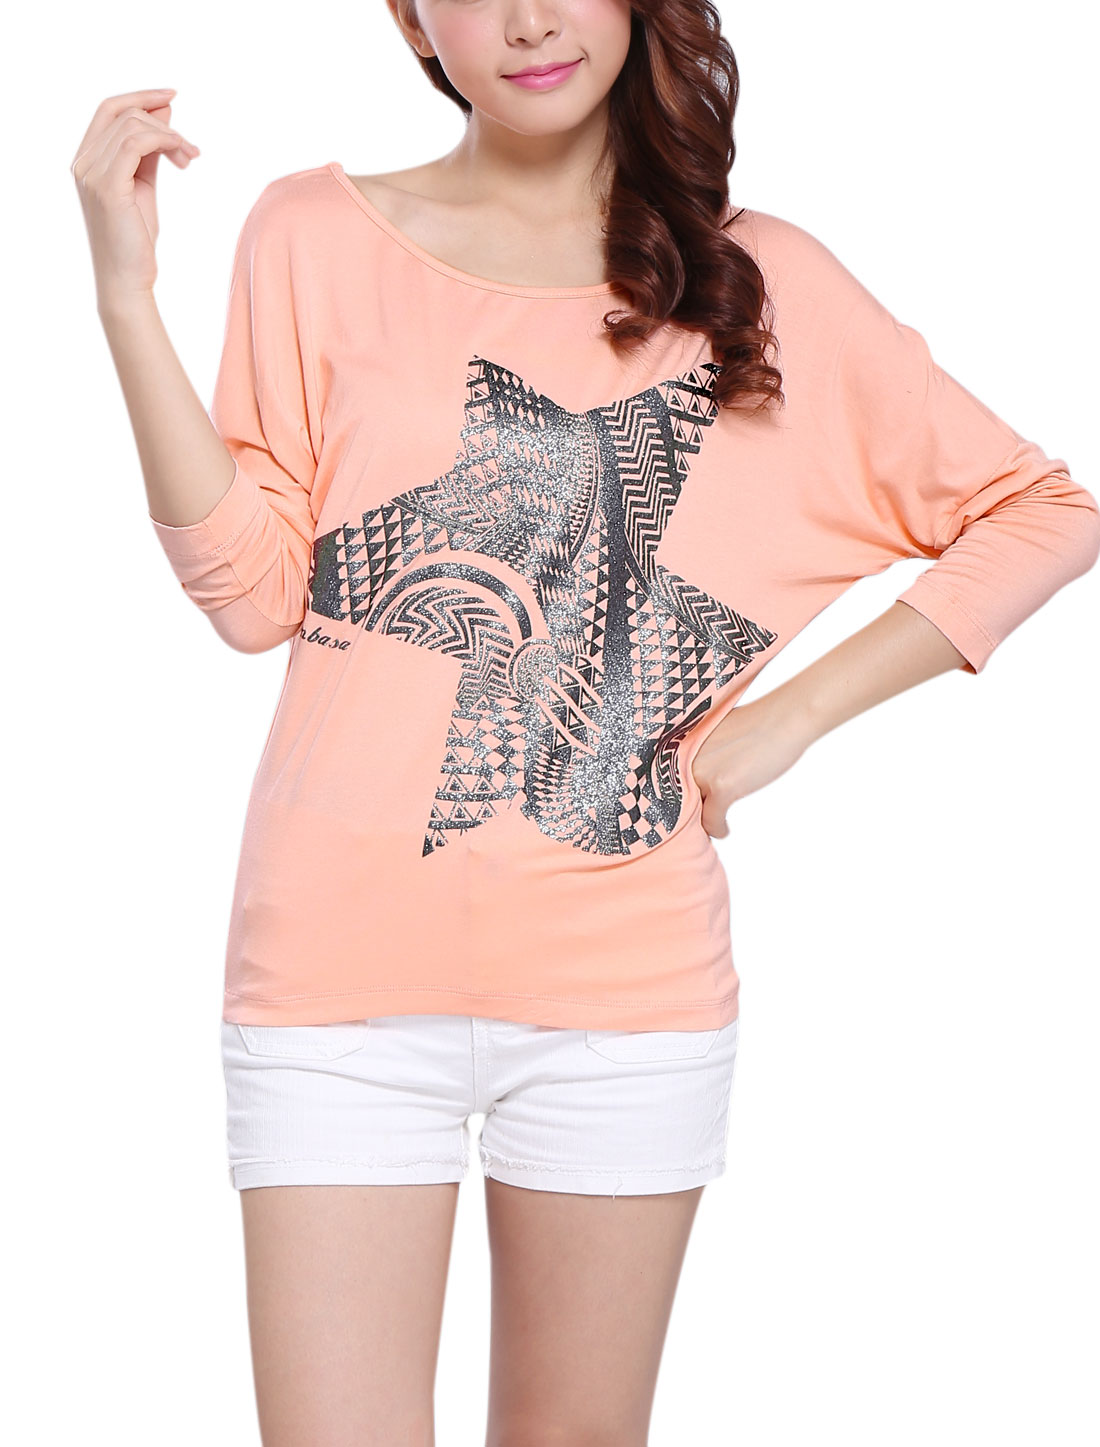 Women Long Batwing Sleeve Geometric Prints Top Shirt Pink XS